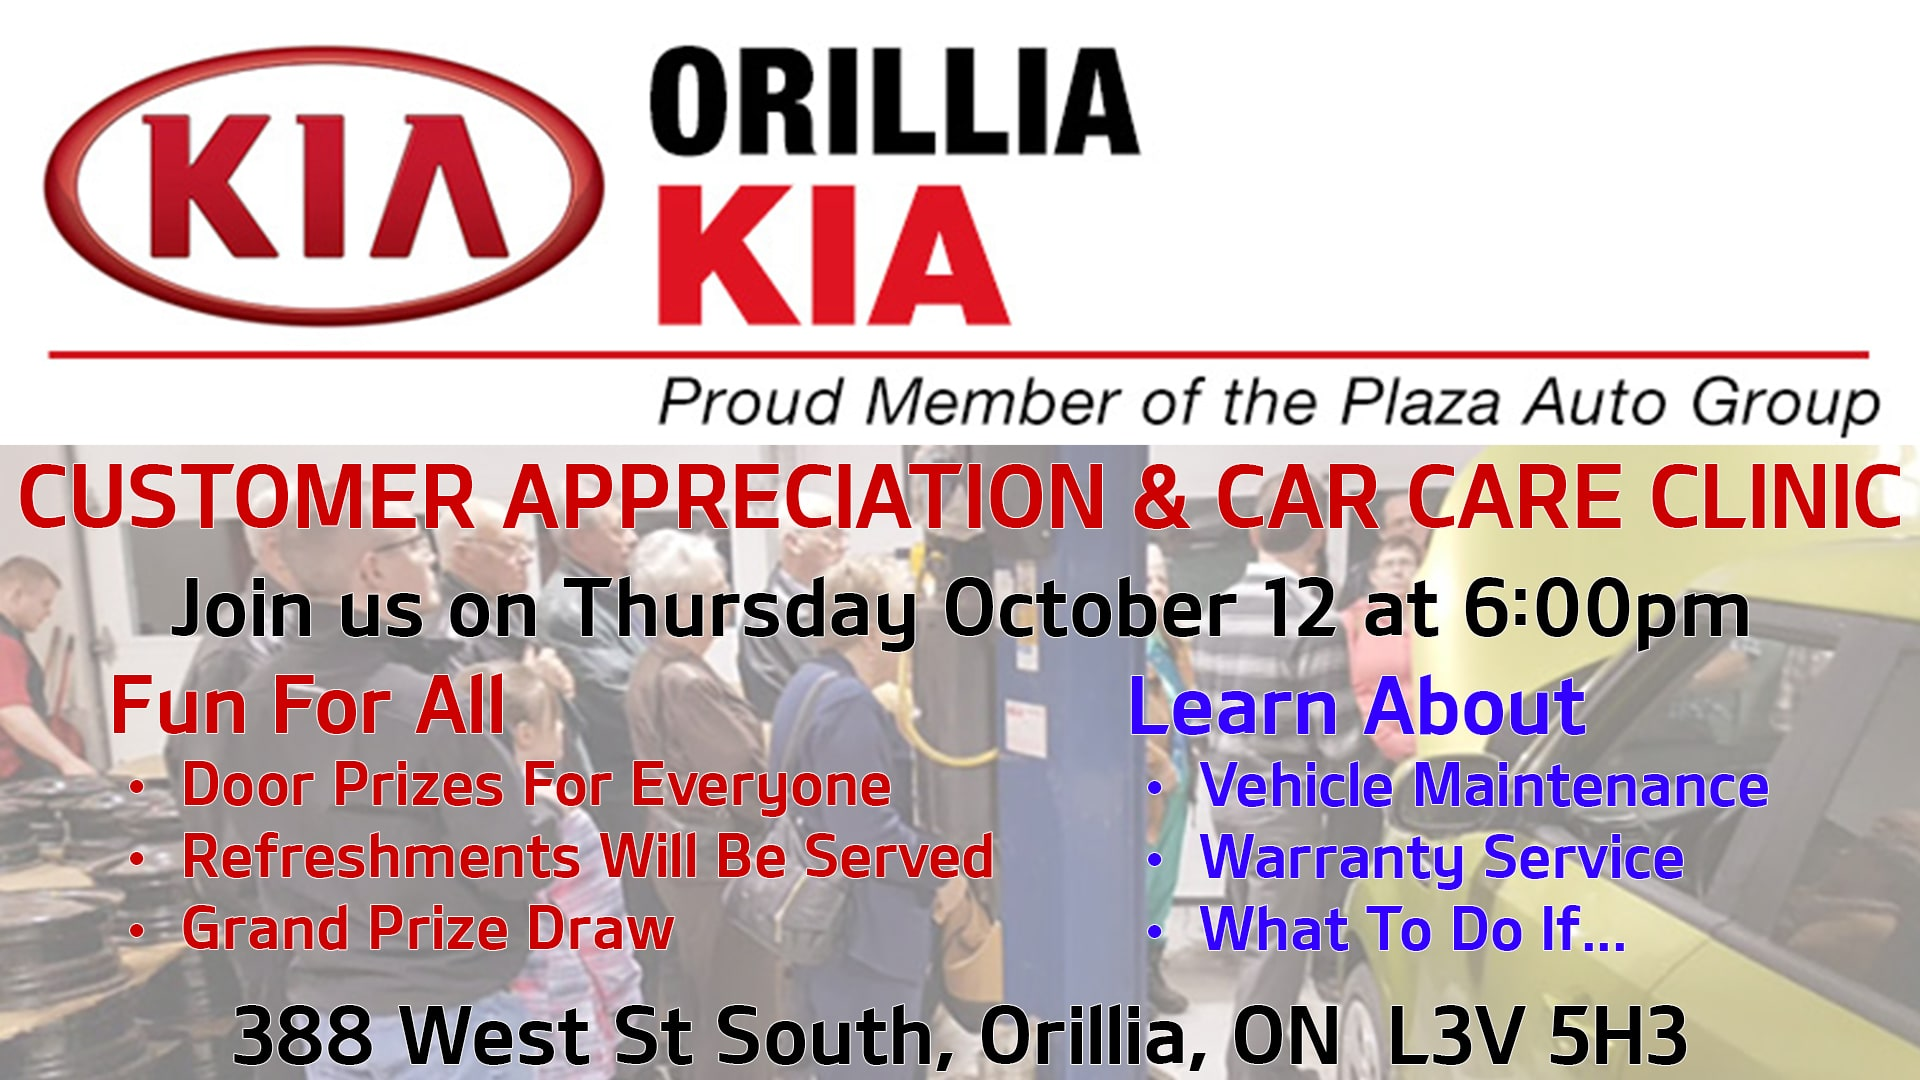 Customer Appreciation Evening October 12, 2017